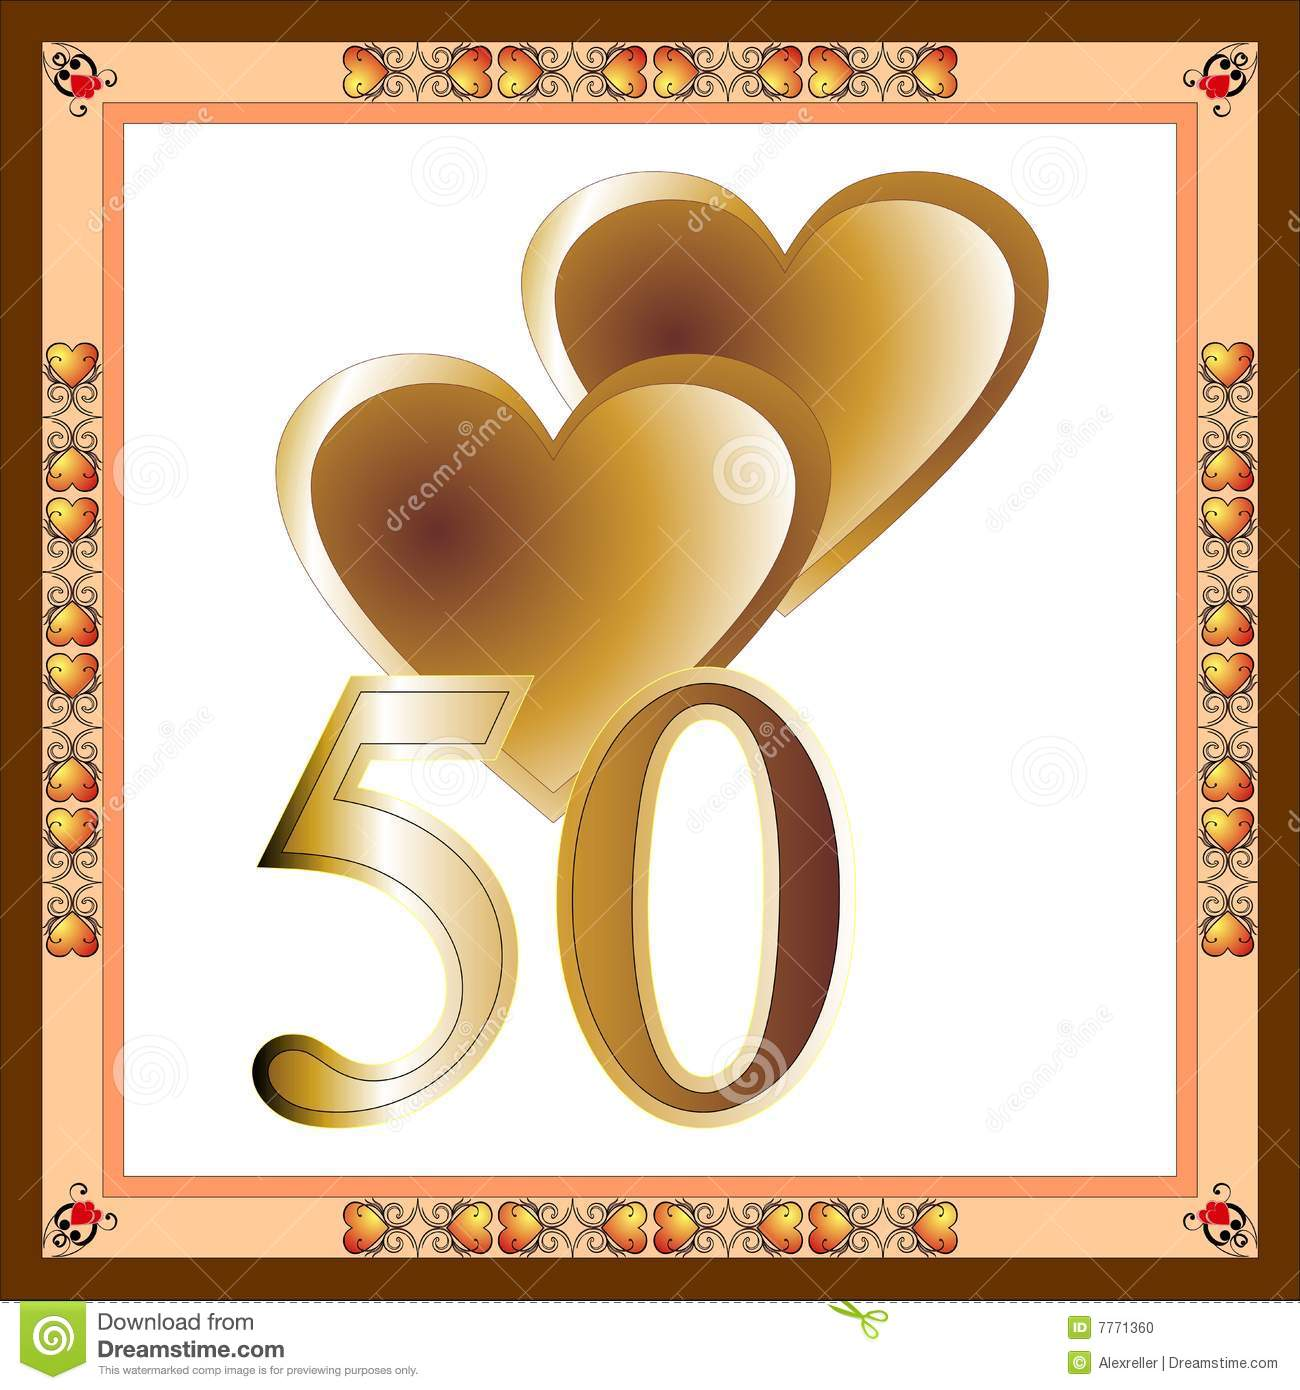 50th Anniversary Card Stock Photo - Image: 7771360